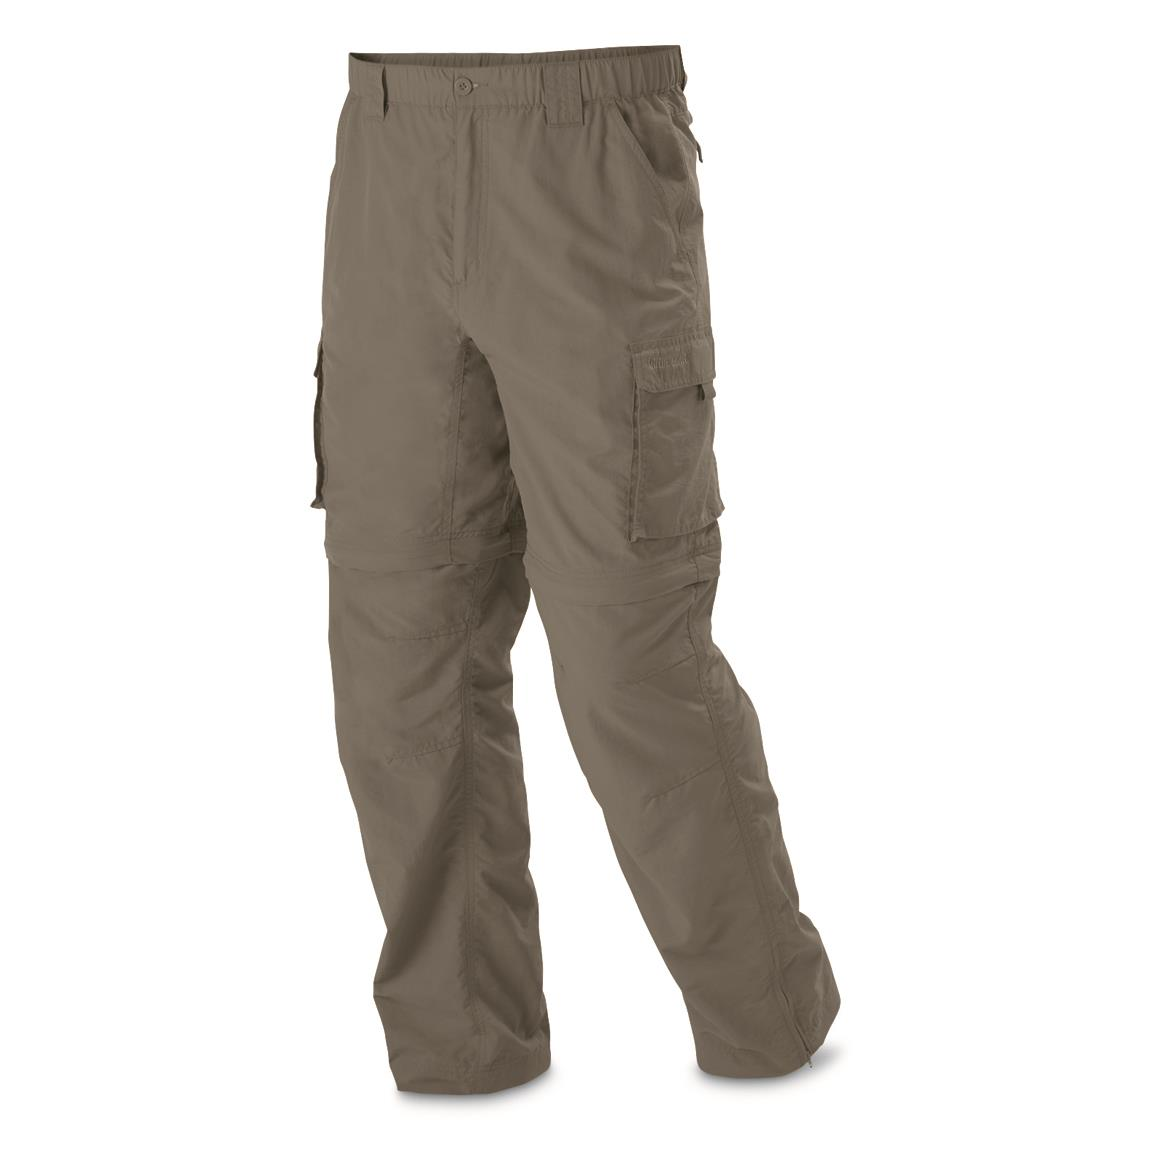 Guide Gear Men's Zip Off River Pants, Sage